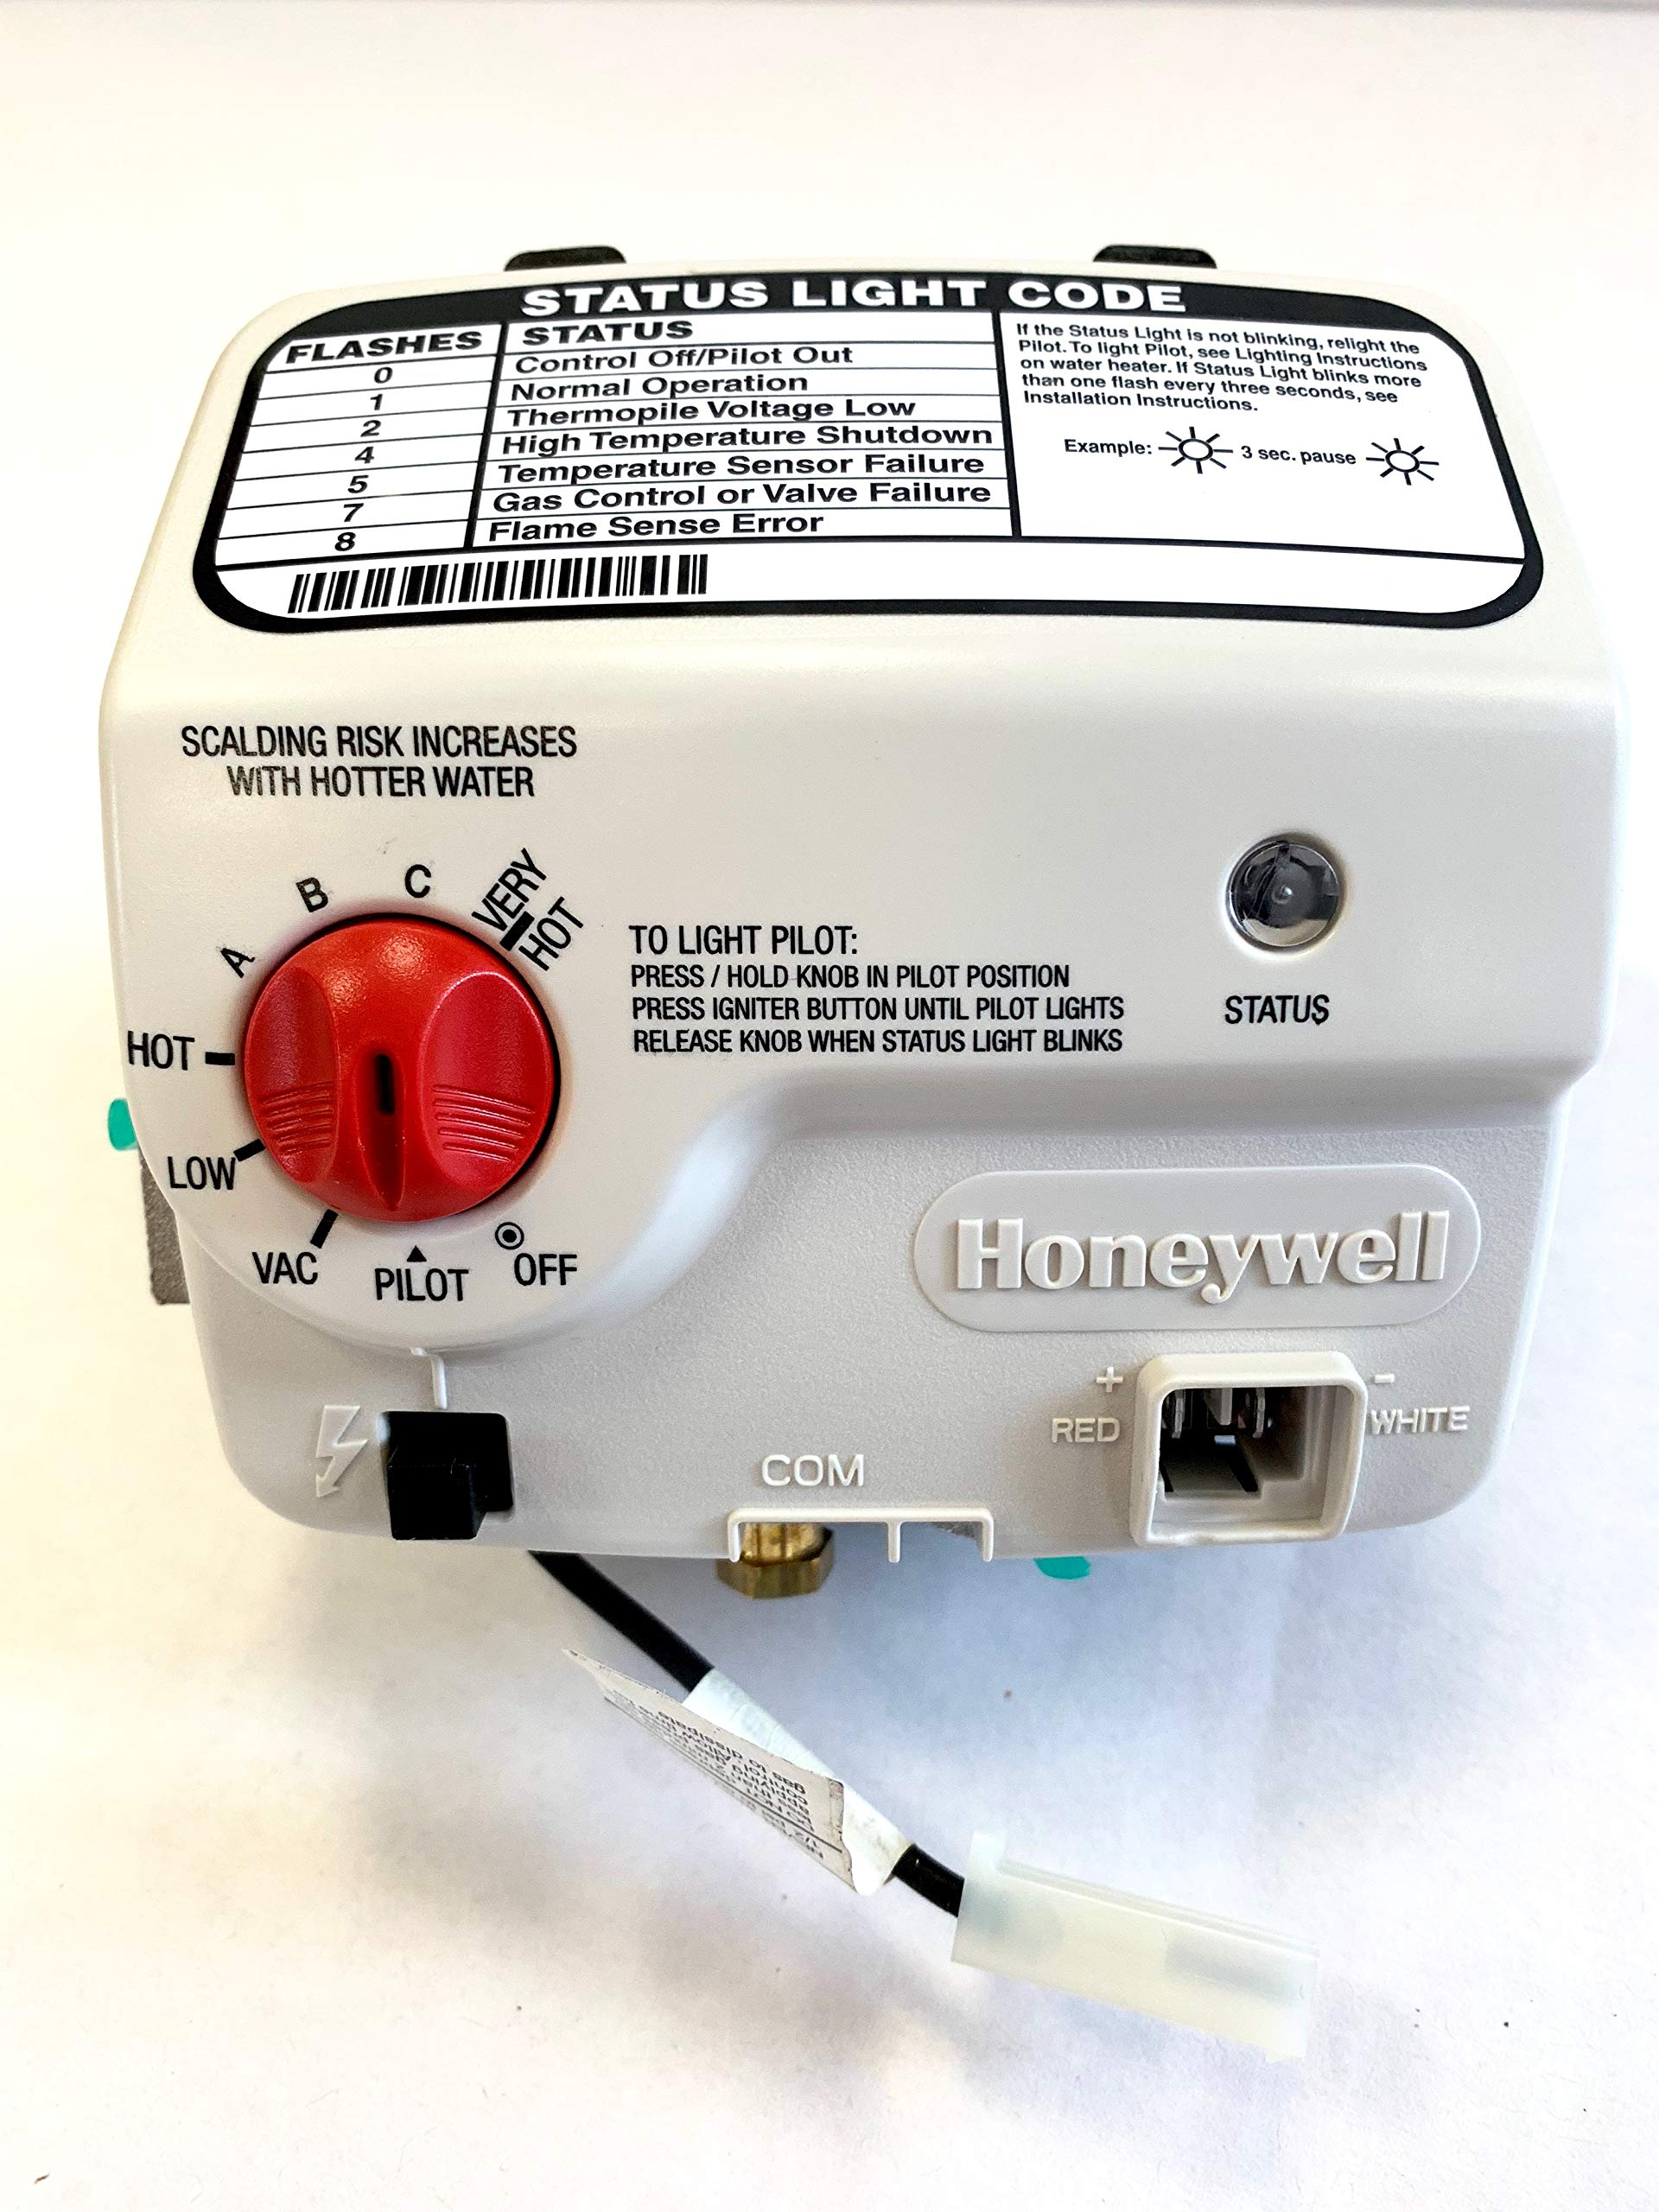 Reliance Water Heater Liquid Propane Gas Control Valve 100112338 9007890005 100093977 6911135 Thermostat Compatible with A.O. Smith, Reliance, State, and American Branded Water Heaters by Variety Home Supply